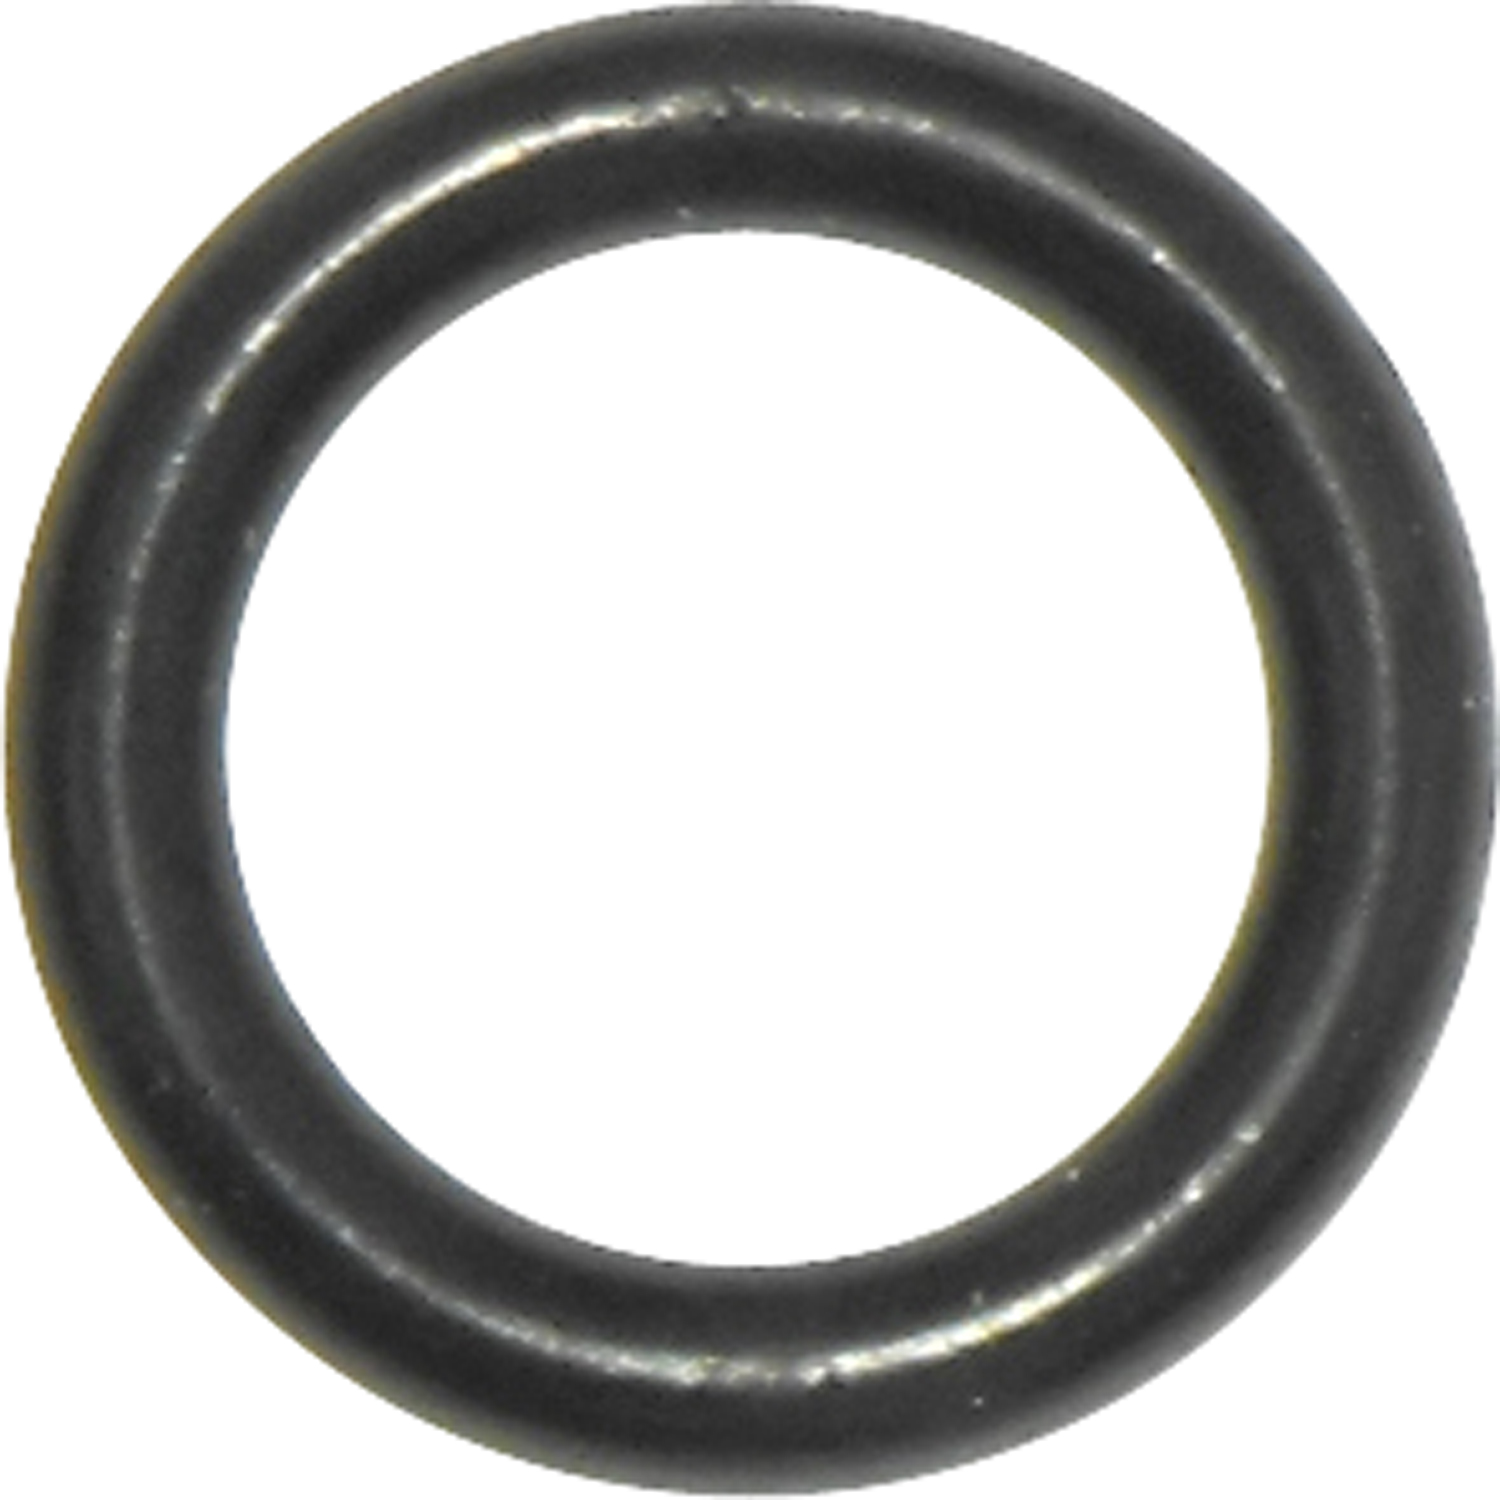 Oring # 5 14MM TOY HSE FT D